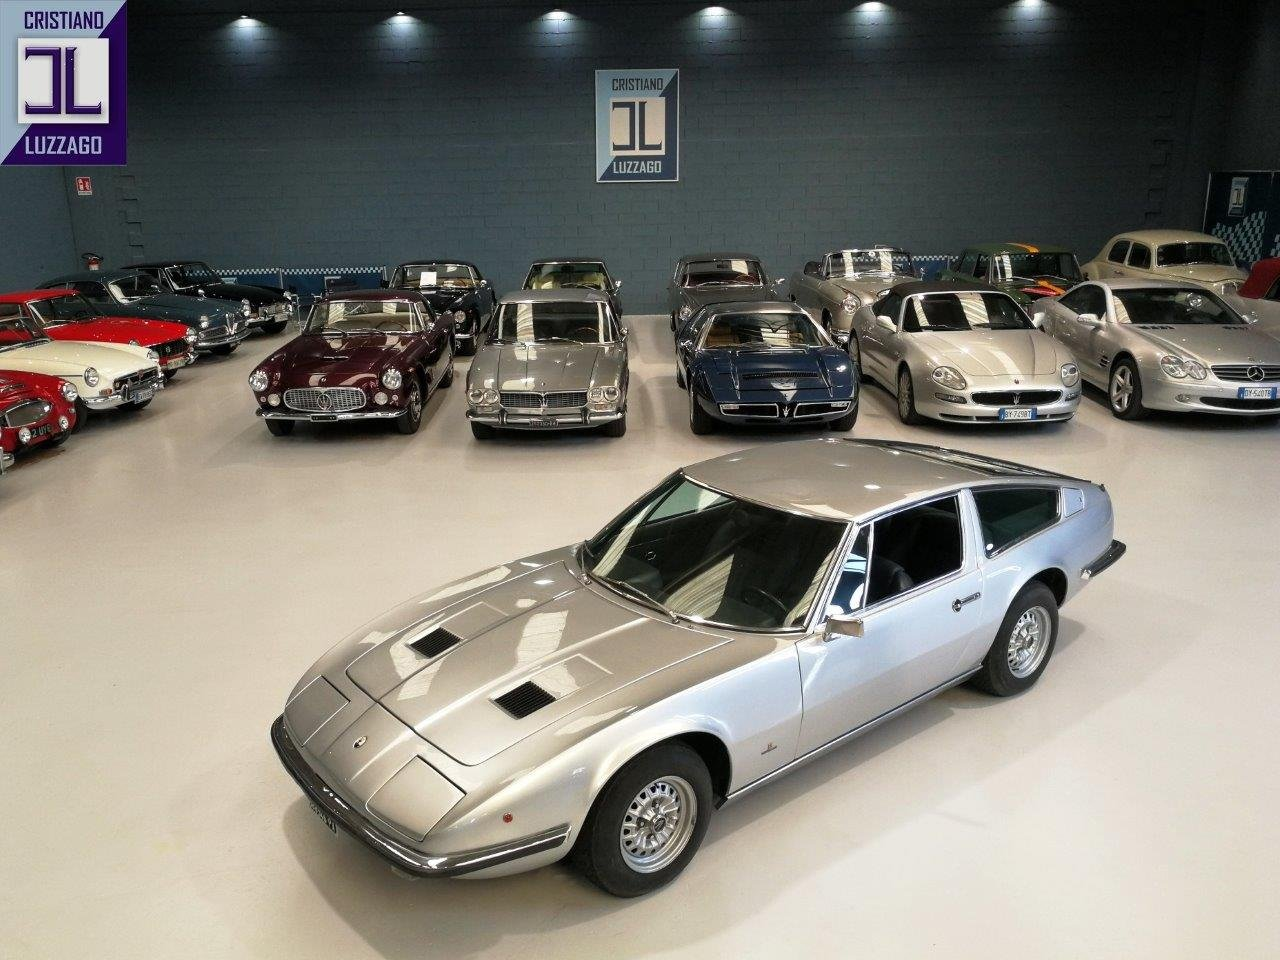 1969 MASERATI INDY 4.200 SHOW CAR of 51° SALONE DELL'AUTOMOBILE D For Sale (picture 1 of 6)